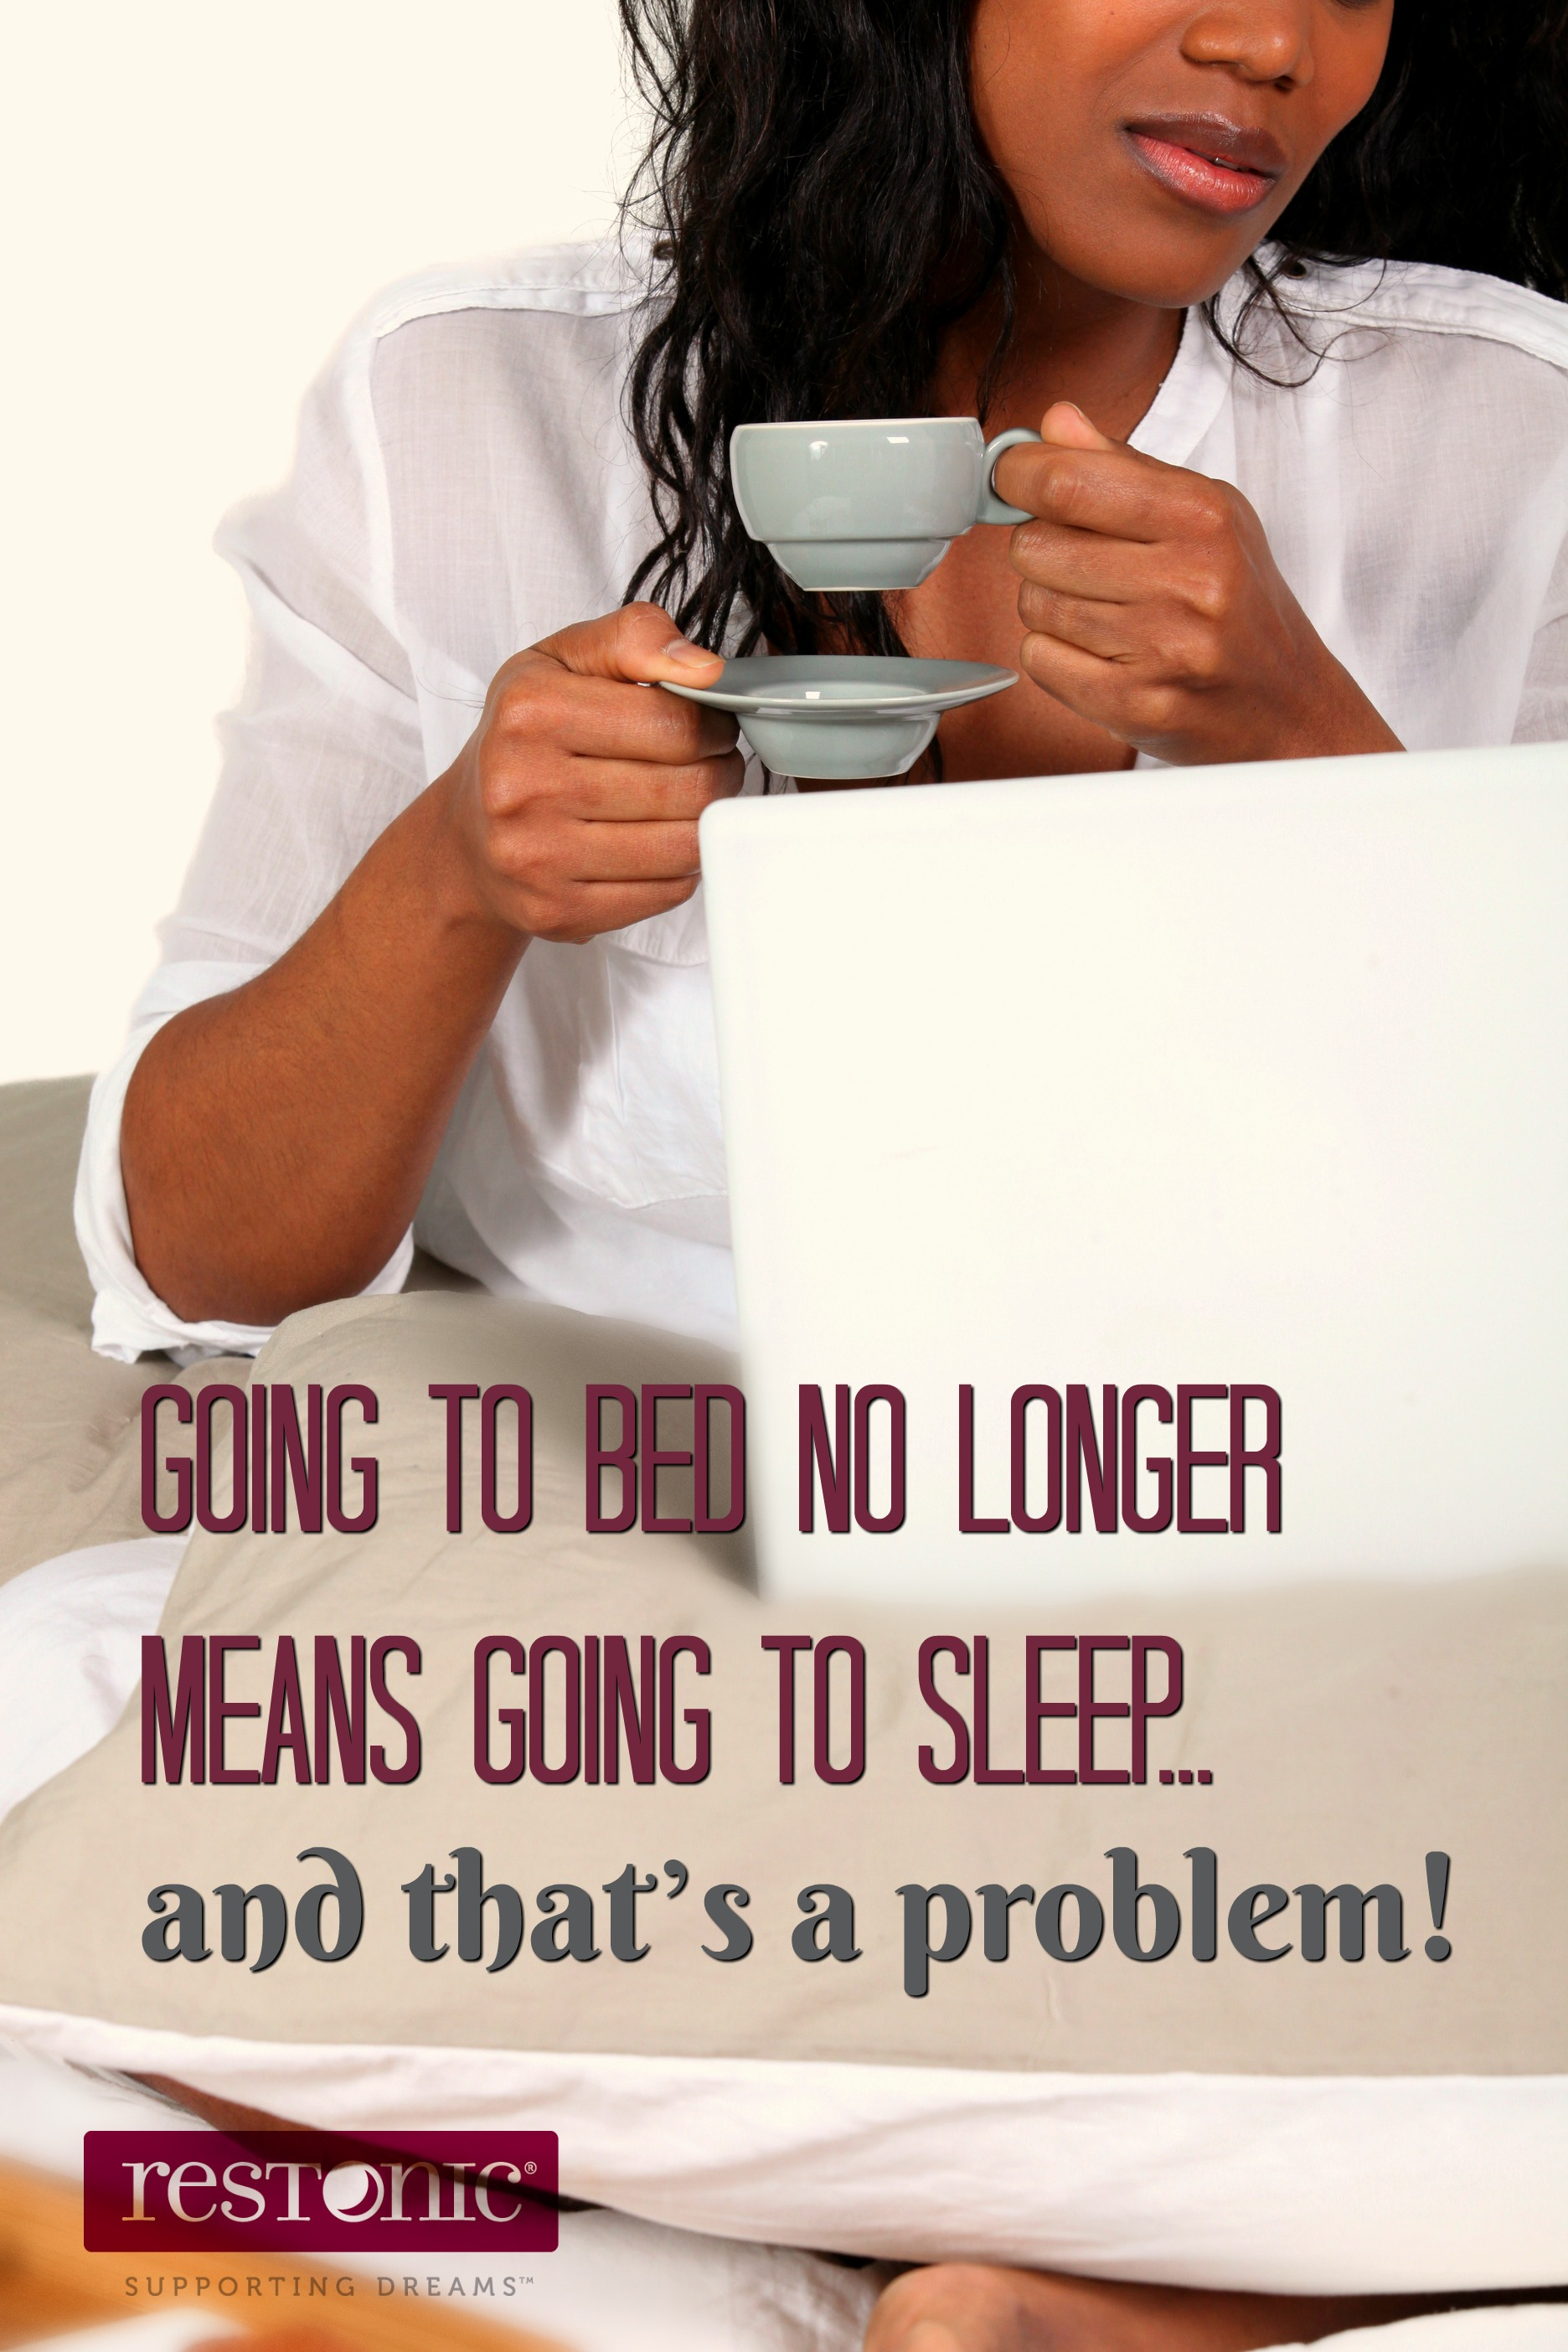 Tips to avoid sleeplessness at night.